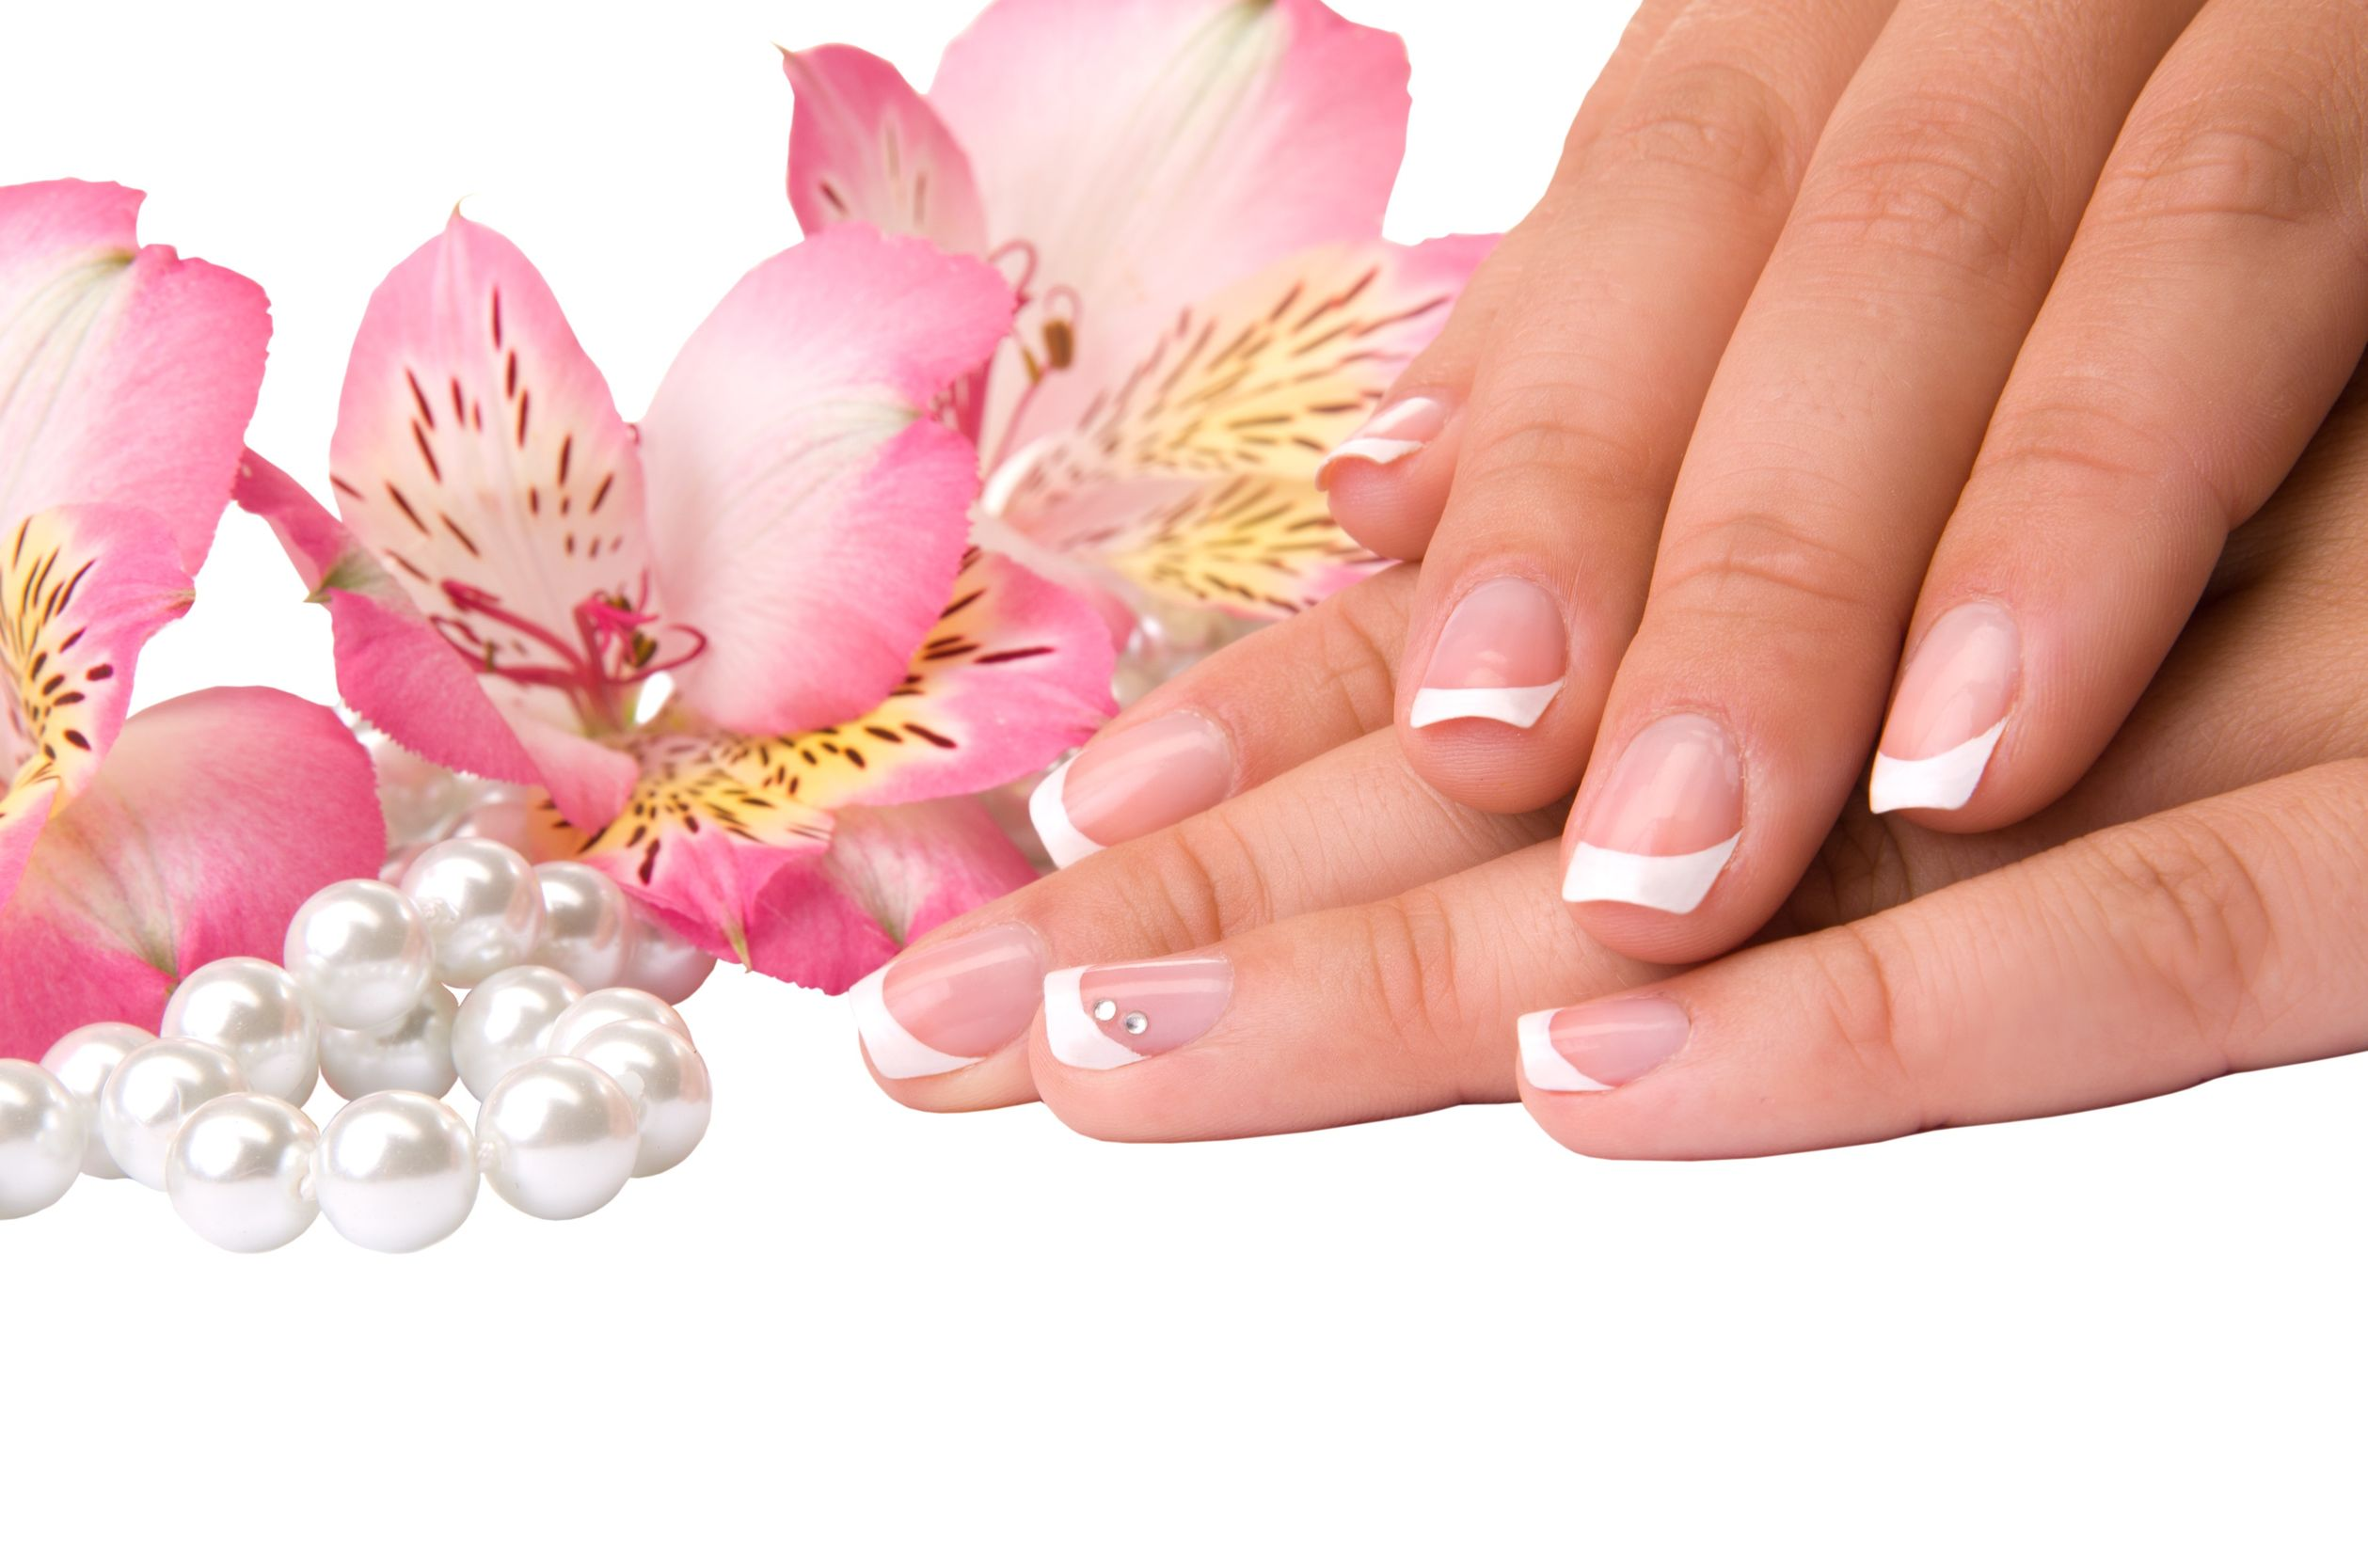 nail technicians can have your hands and nails looking their very best 2517x1667